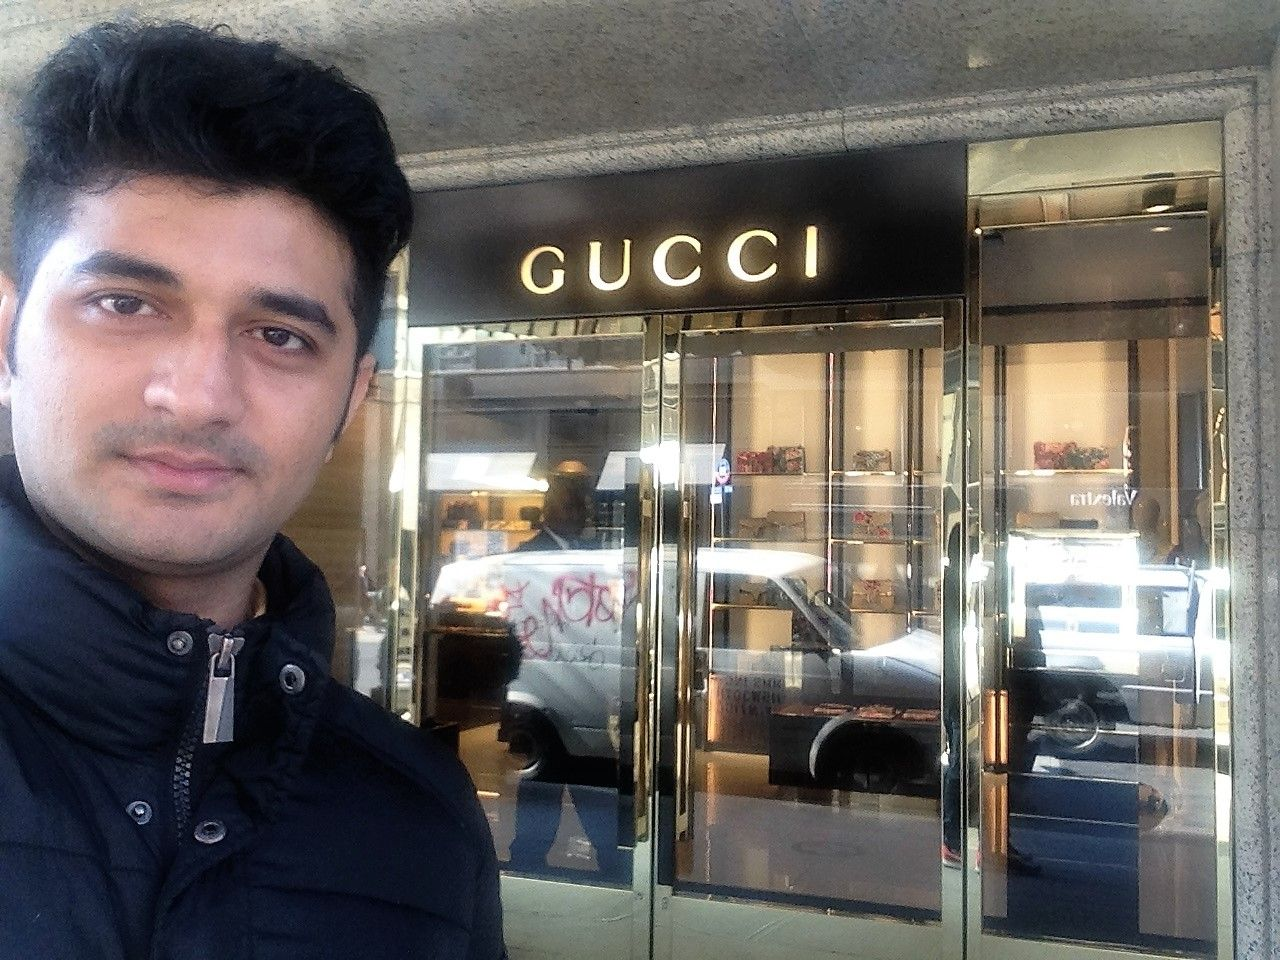 Gucci, 725 5th Avenue Store, New York Part 1 AntiLaw 8